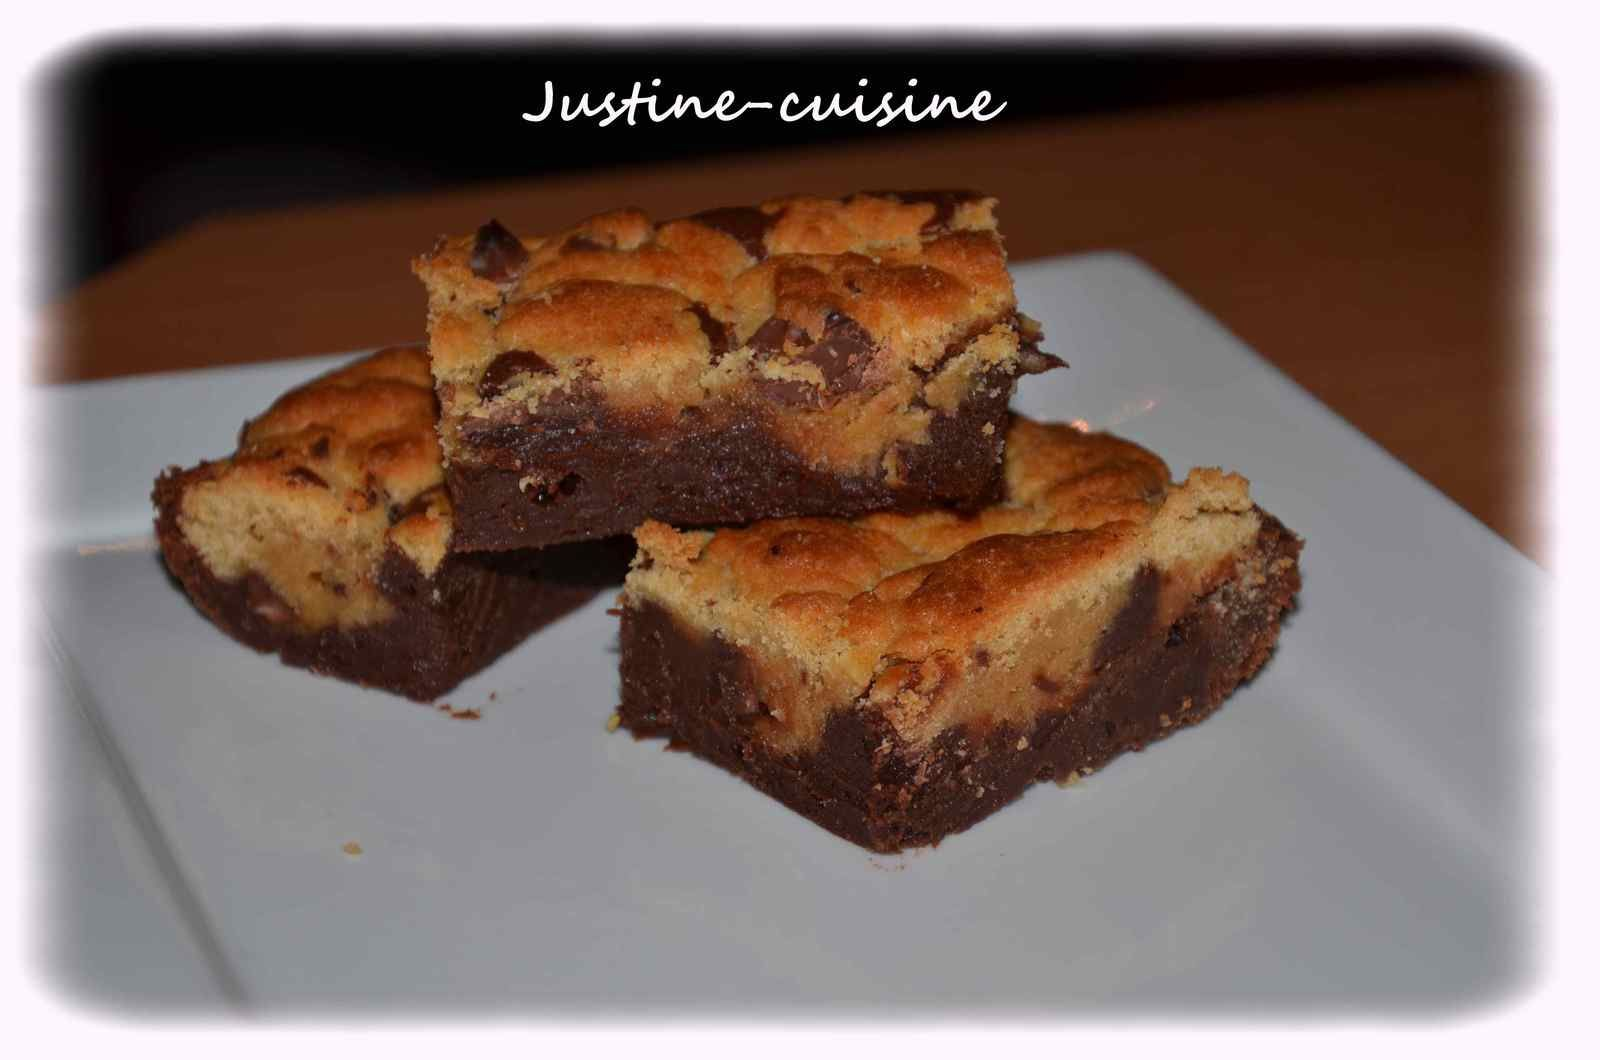 Le brookie (brownie/cookie)